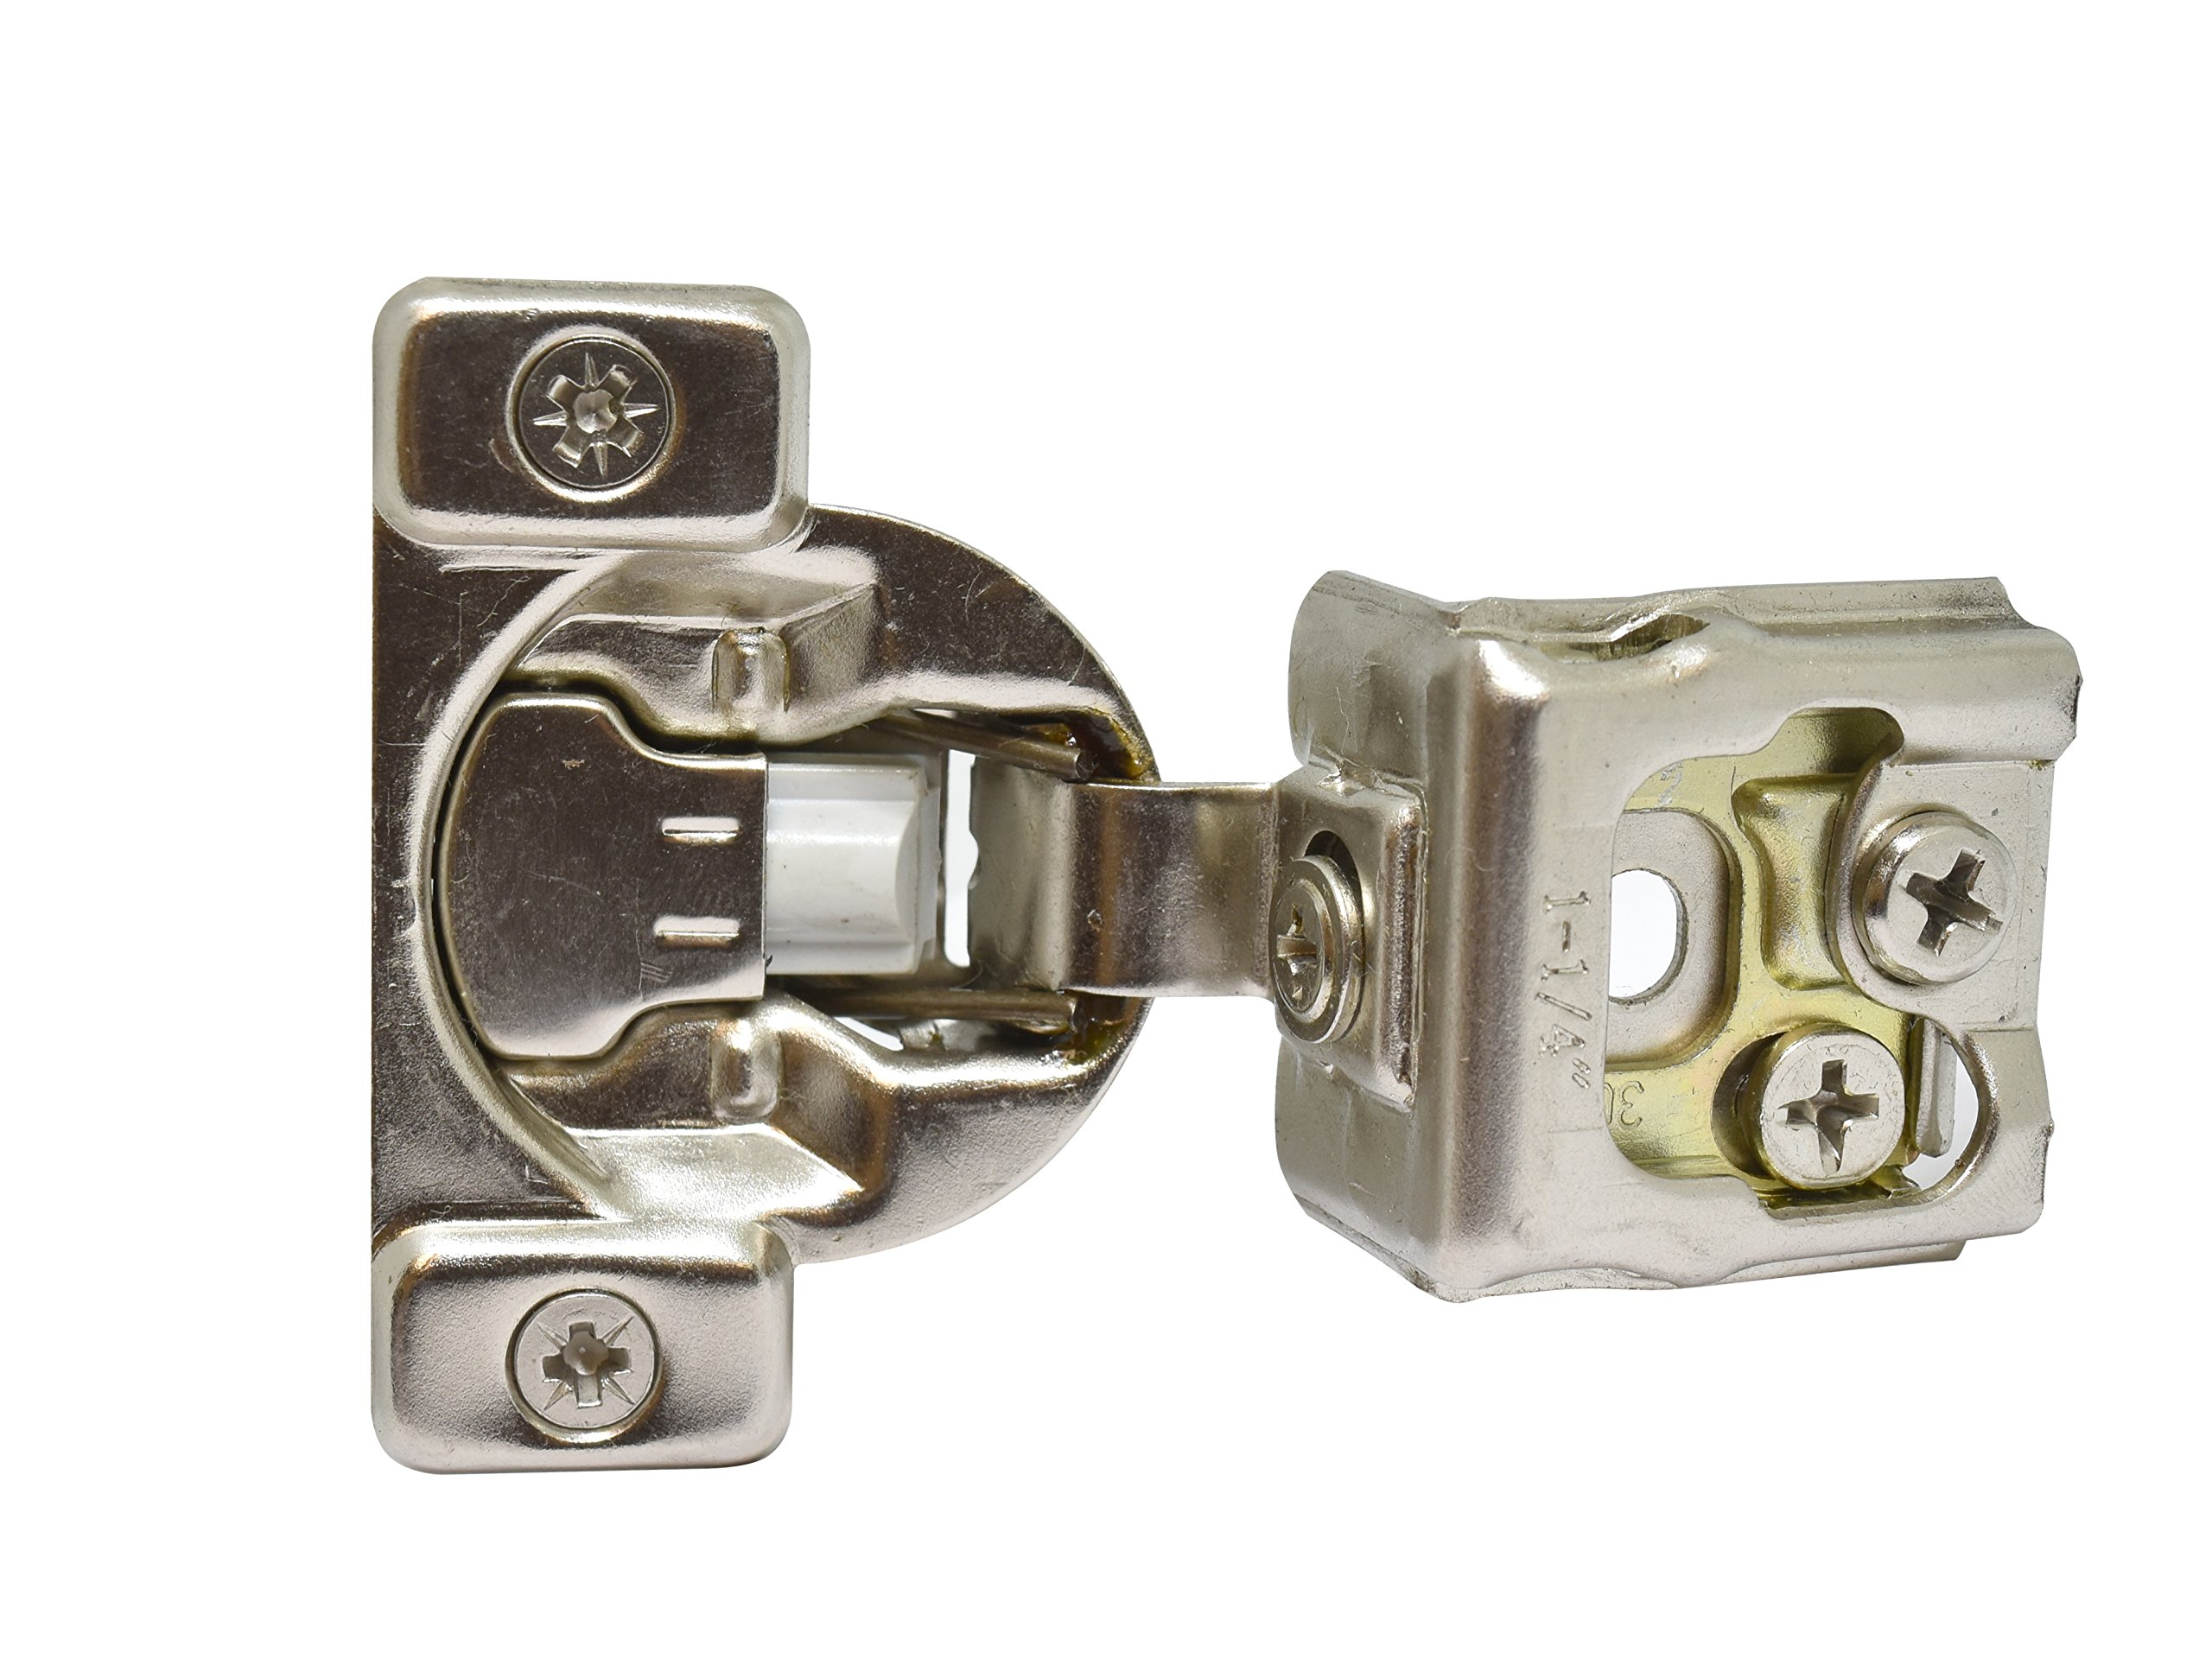 Silverline SCH125S Soft Close Hinge, 3 Way Adjustable, 1-1/4'' Overlay Face Frame, Nickel Plated 25 Pack